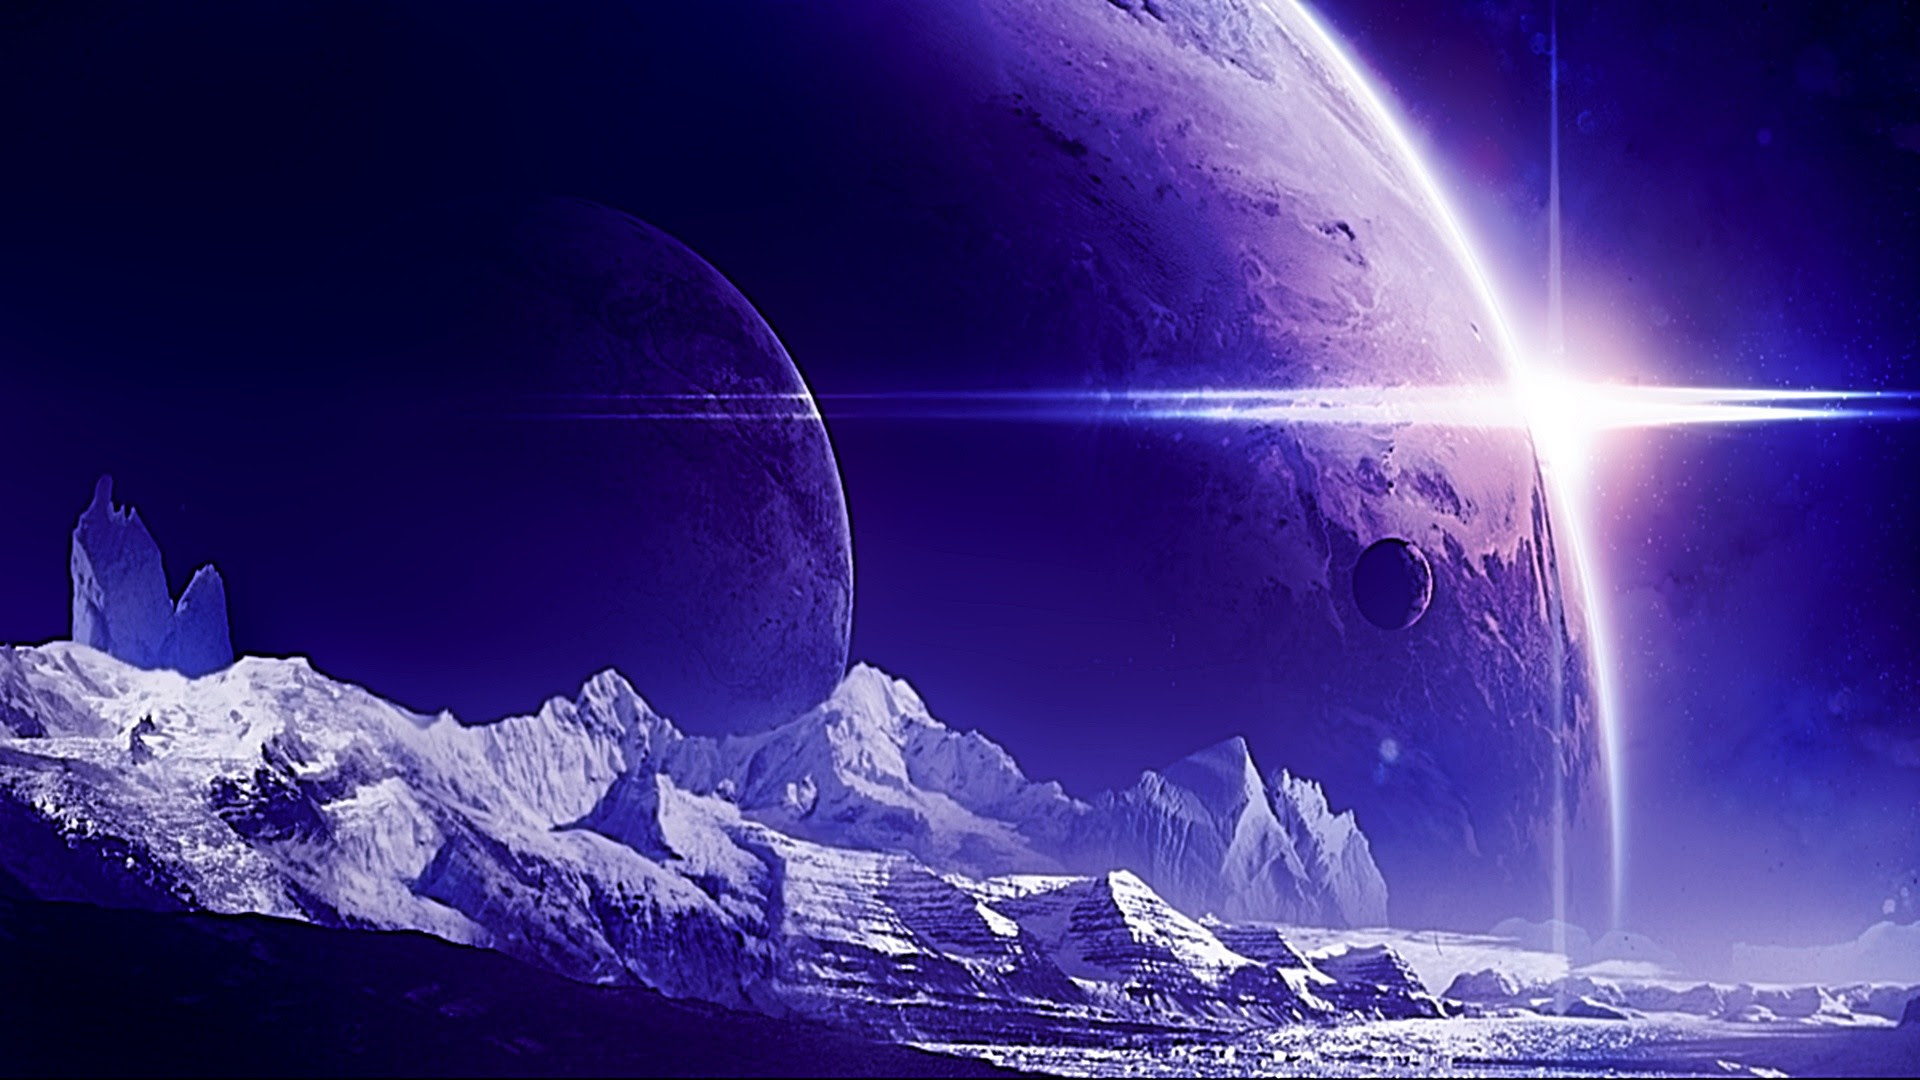 Cool Space Backgrounds (79+ images)